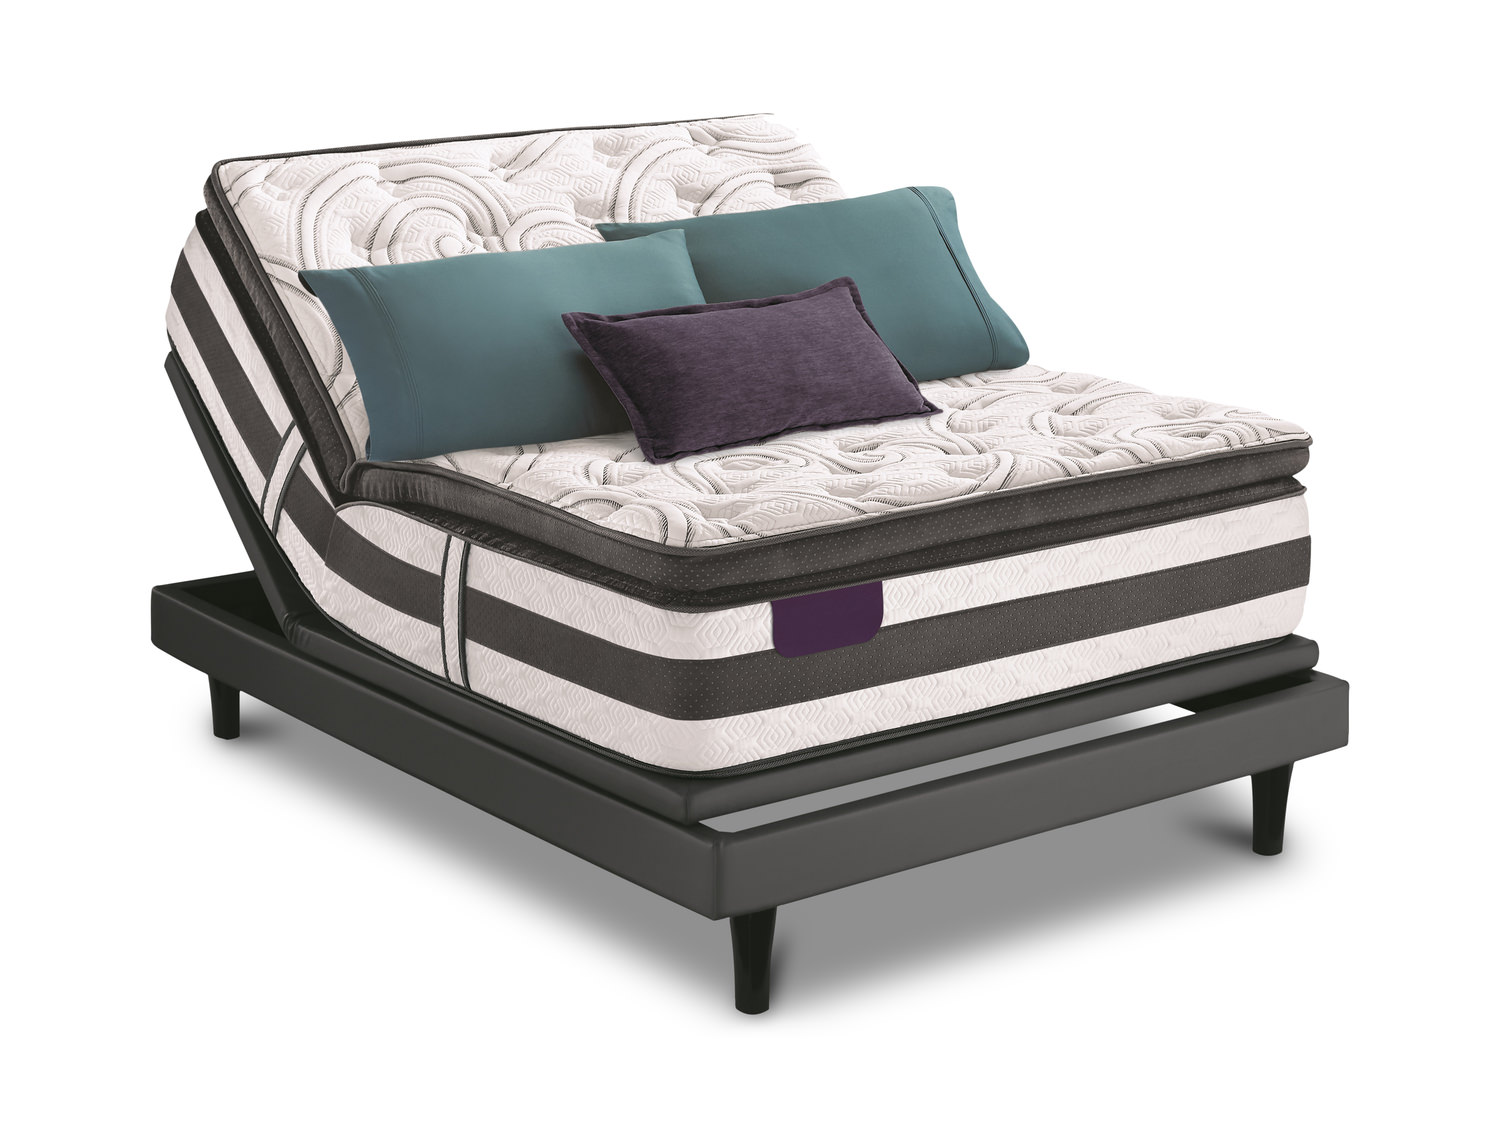 Expertise Super Pillow Top King Mattress Set With Divided King Mp3 Adjustable Base By Serta Dock86